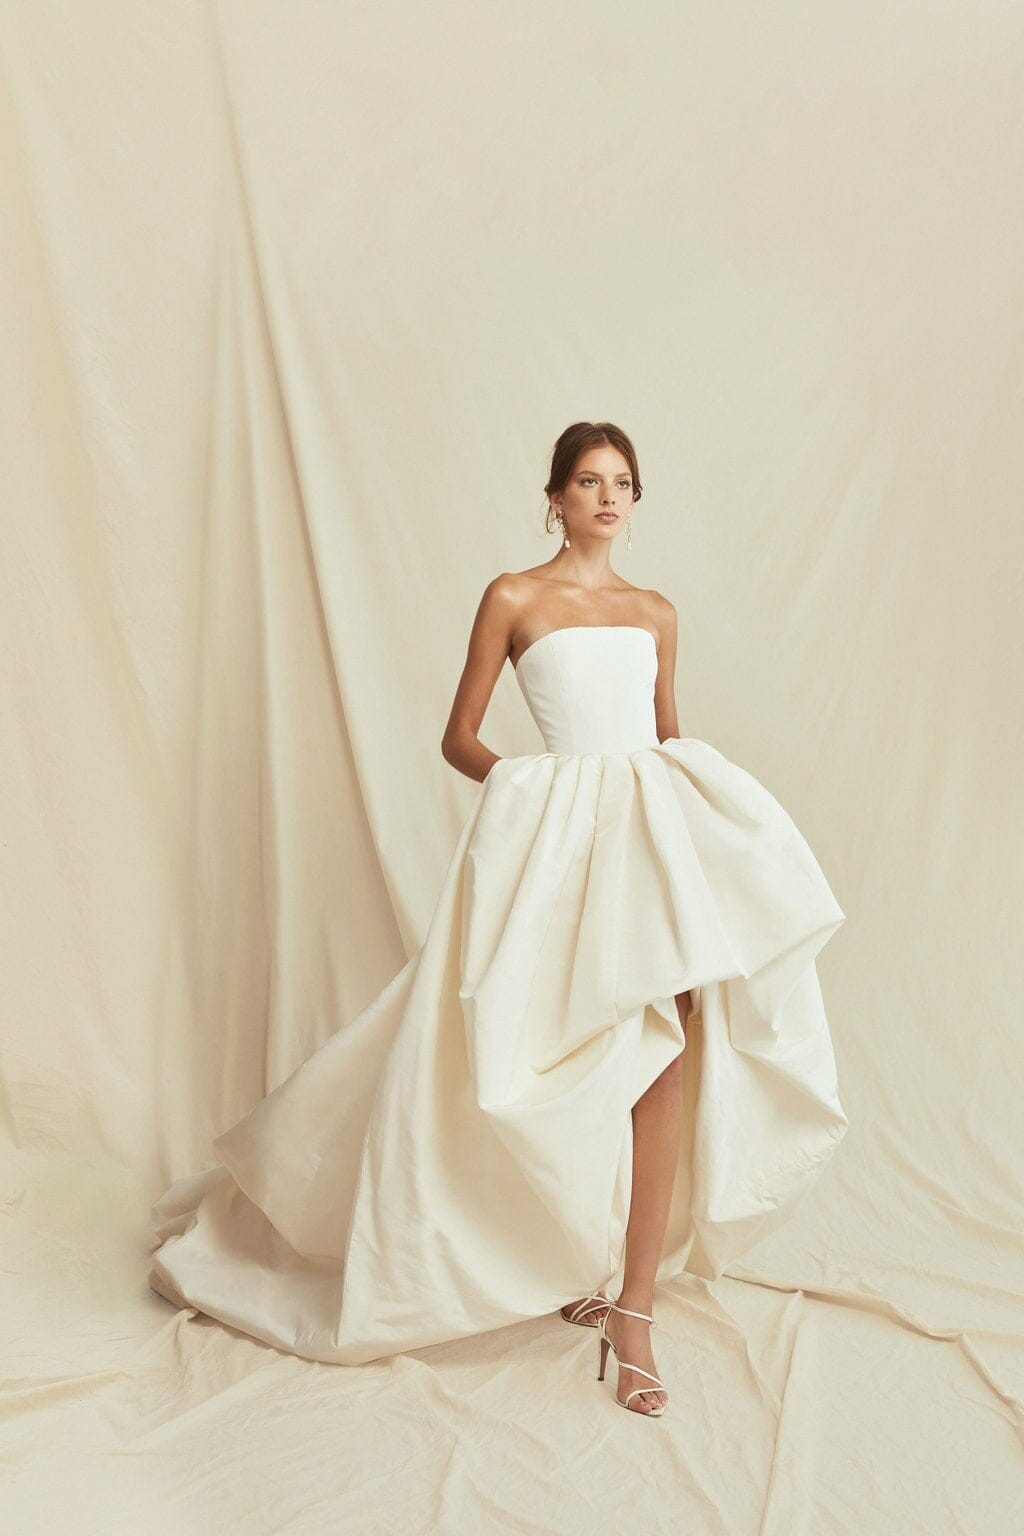 Oscar de la Renta Spring Summer 2021 Bridal New York. RUNWAY MAGAZINE ® Collections. RUNWAY NOW / RUNWAY NEW